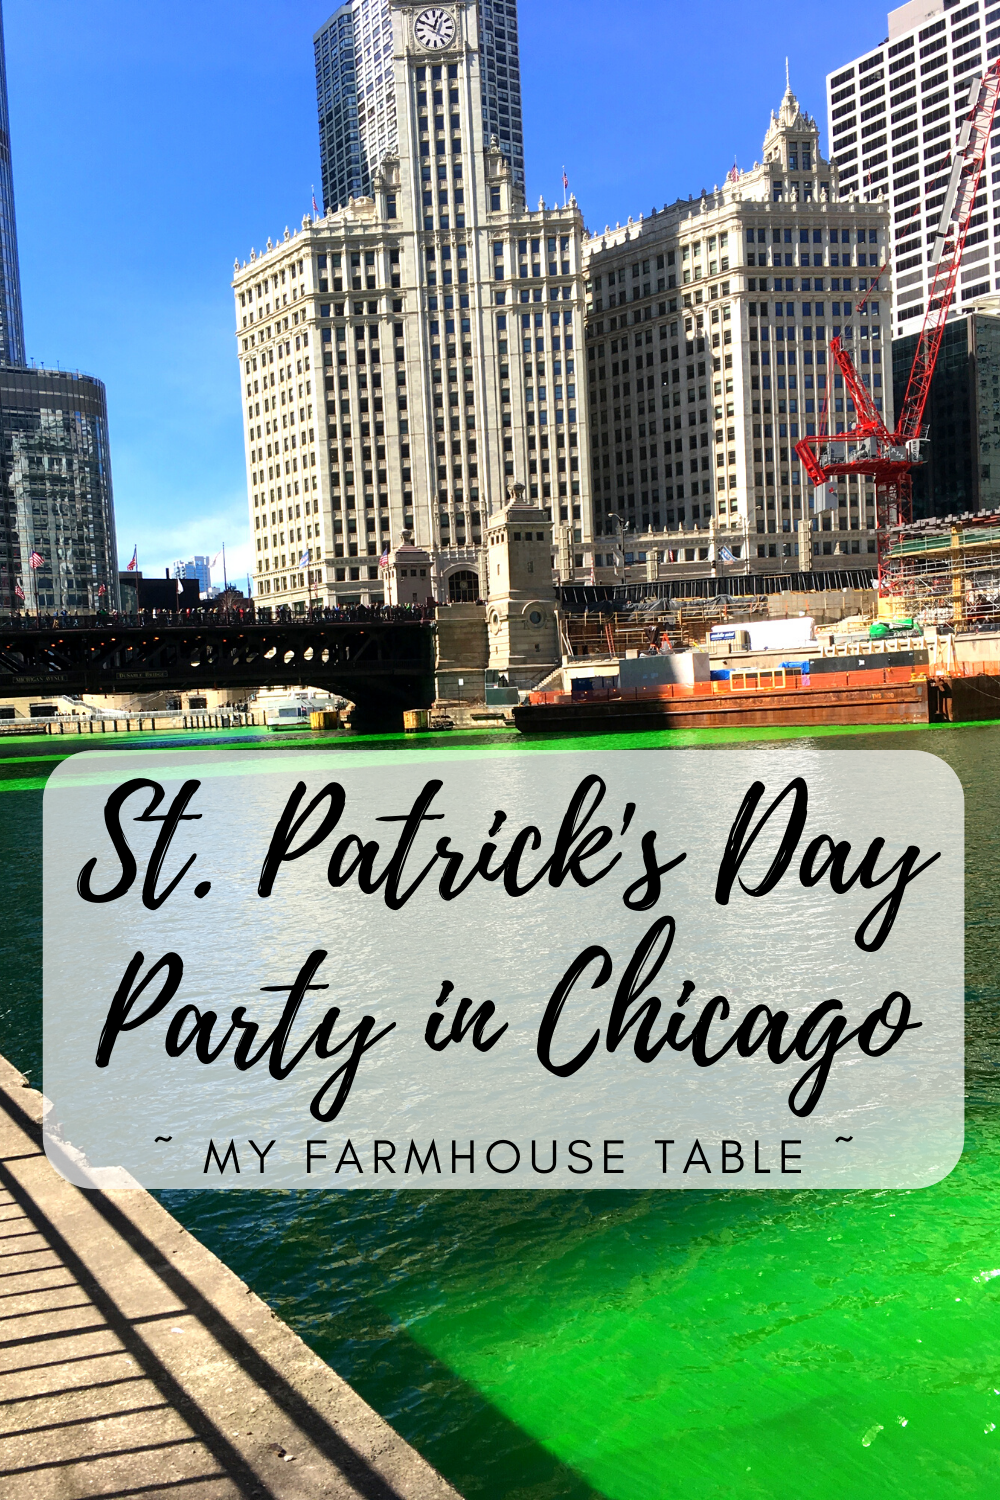 St Patrick's Day Party In Chicago Best Places to Celebrate St Patrick's Day in Chicago Survival Guide to St Paddy's In Chicago Green Chicago River Girls Trip to Chicago for St. Patrick's Day My Farmhouse Table